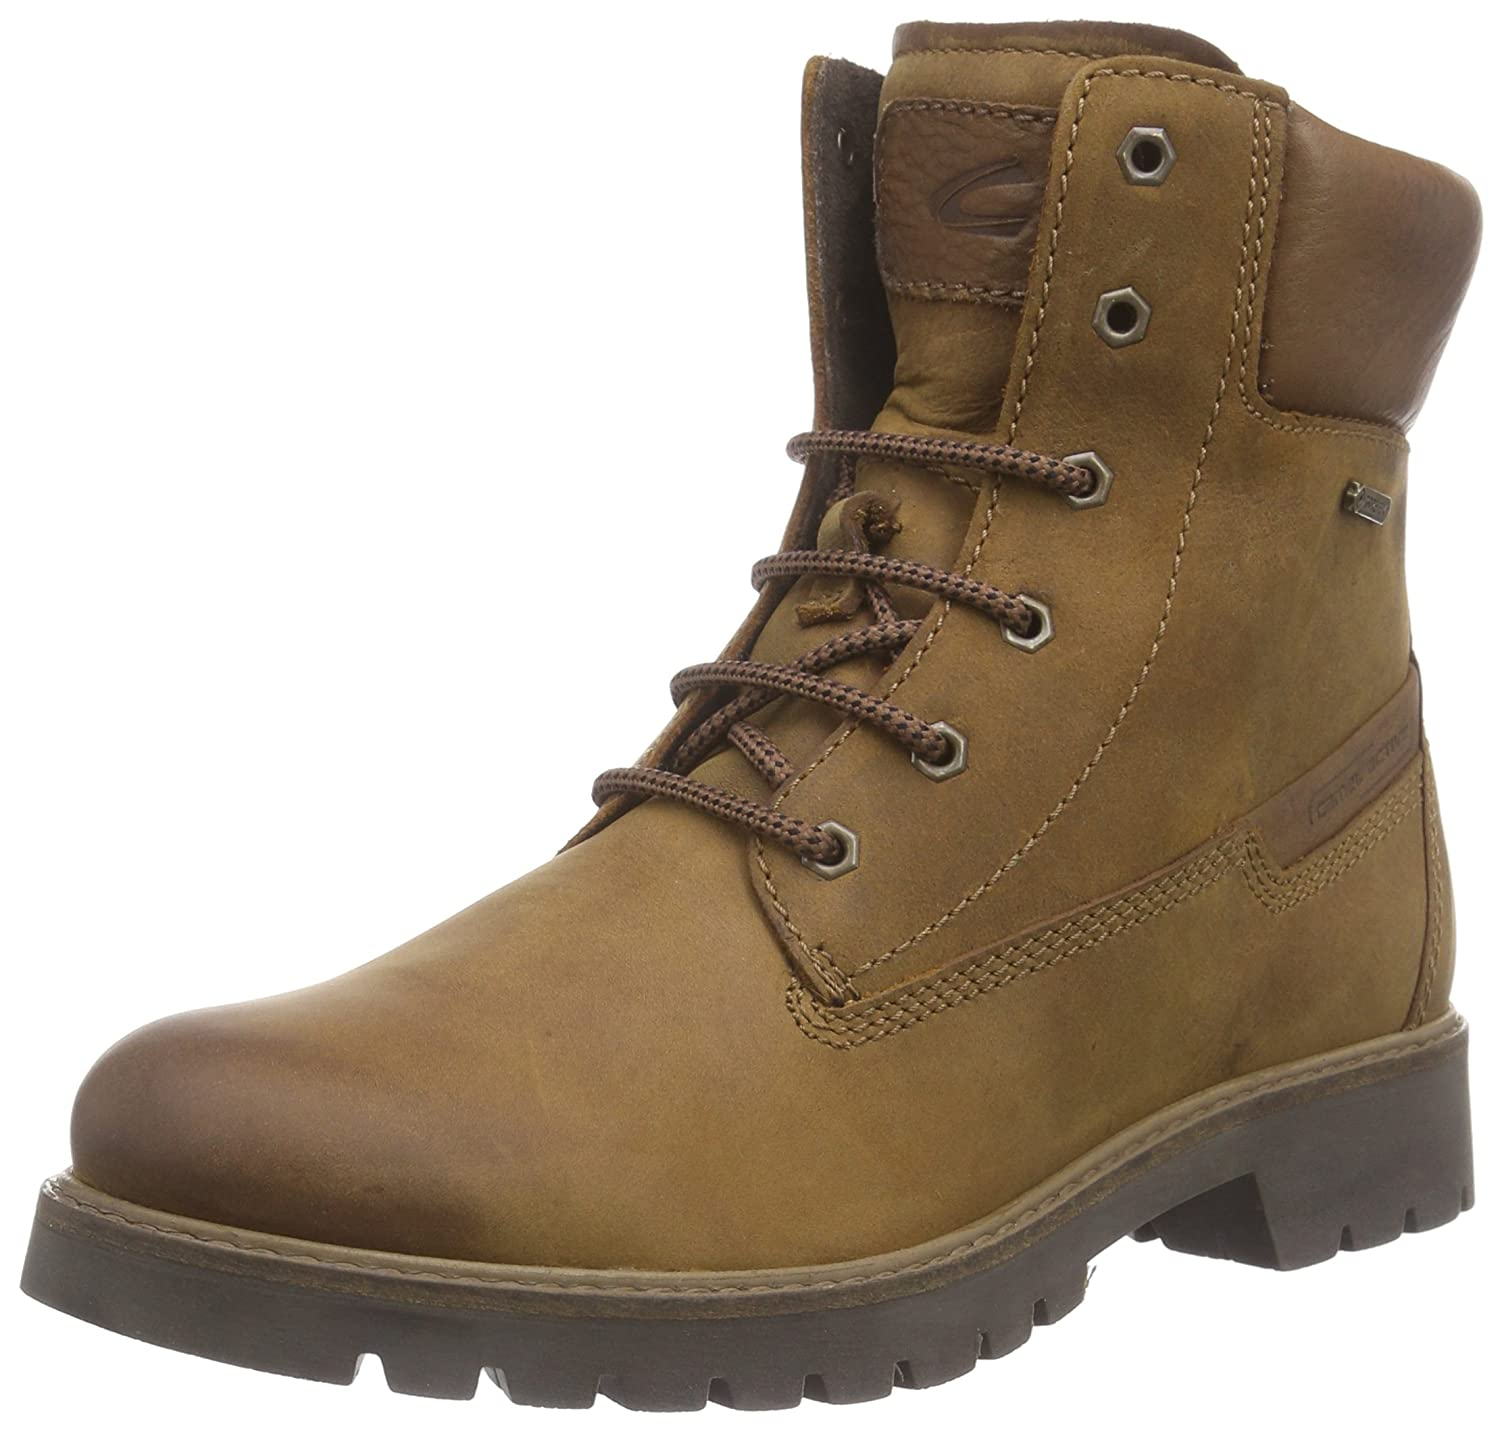 camel active Women's Outback GTX 72 Warm lined classic boots